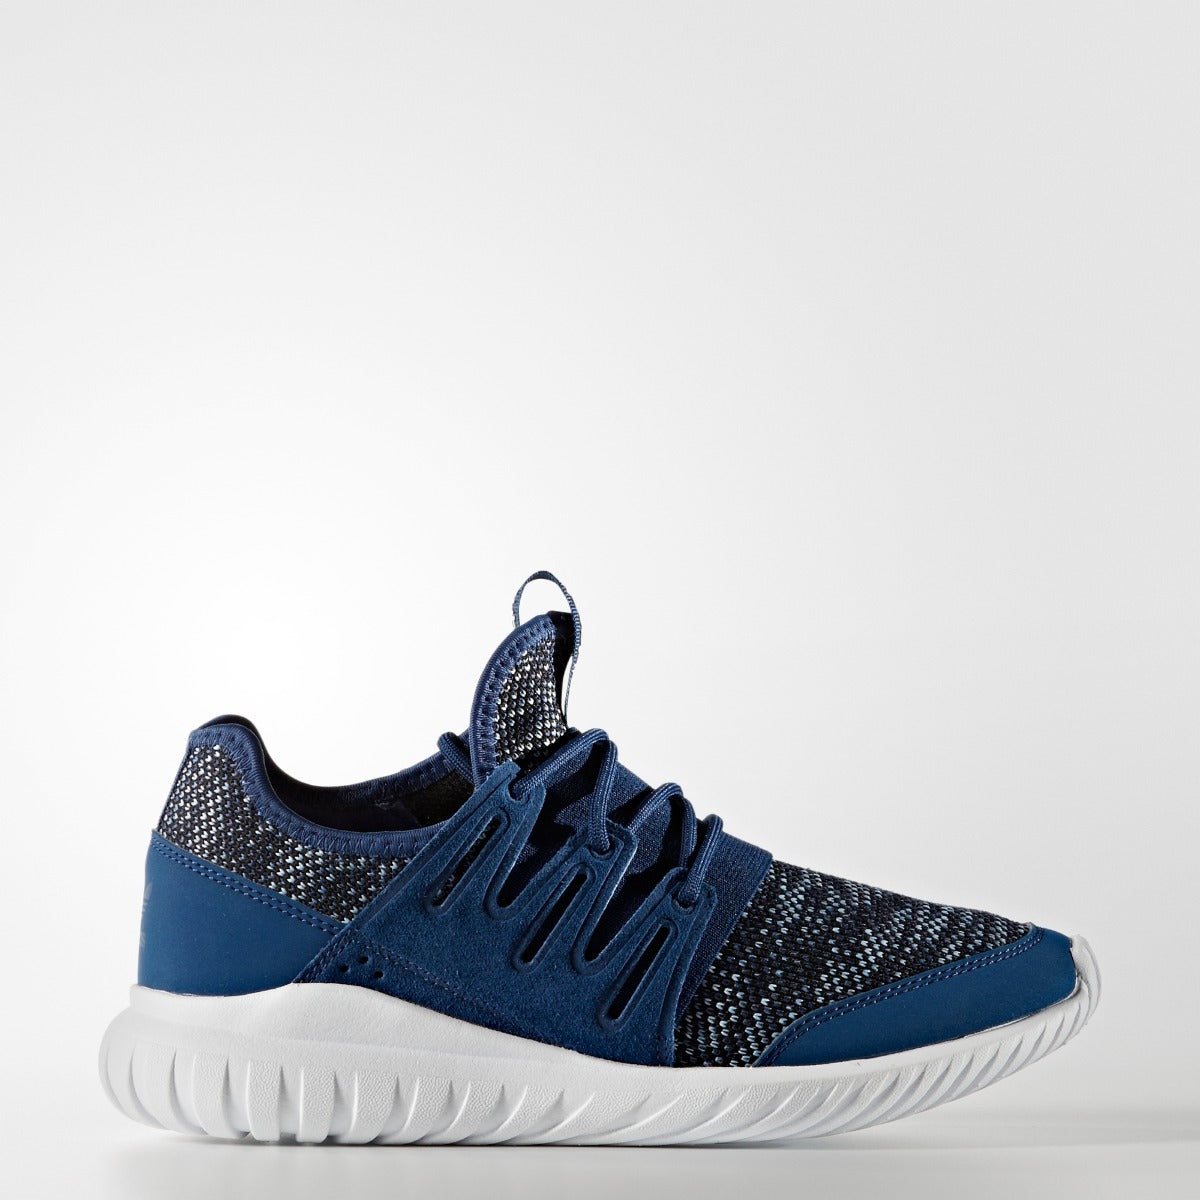 info for 7326a e5bb2 KID S ADIDAS ORIGINALS TUBULAR RADIAL MYSTERY BLUE